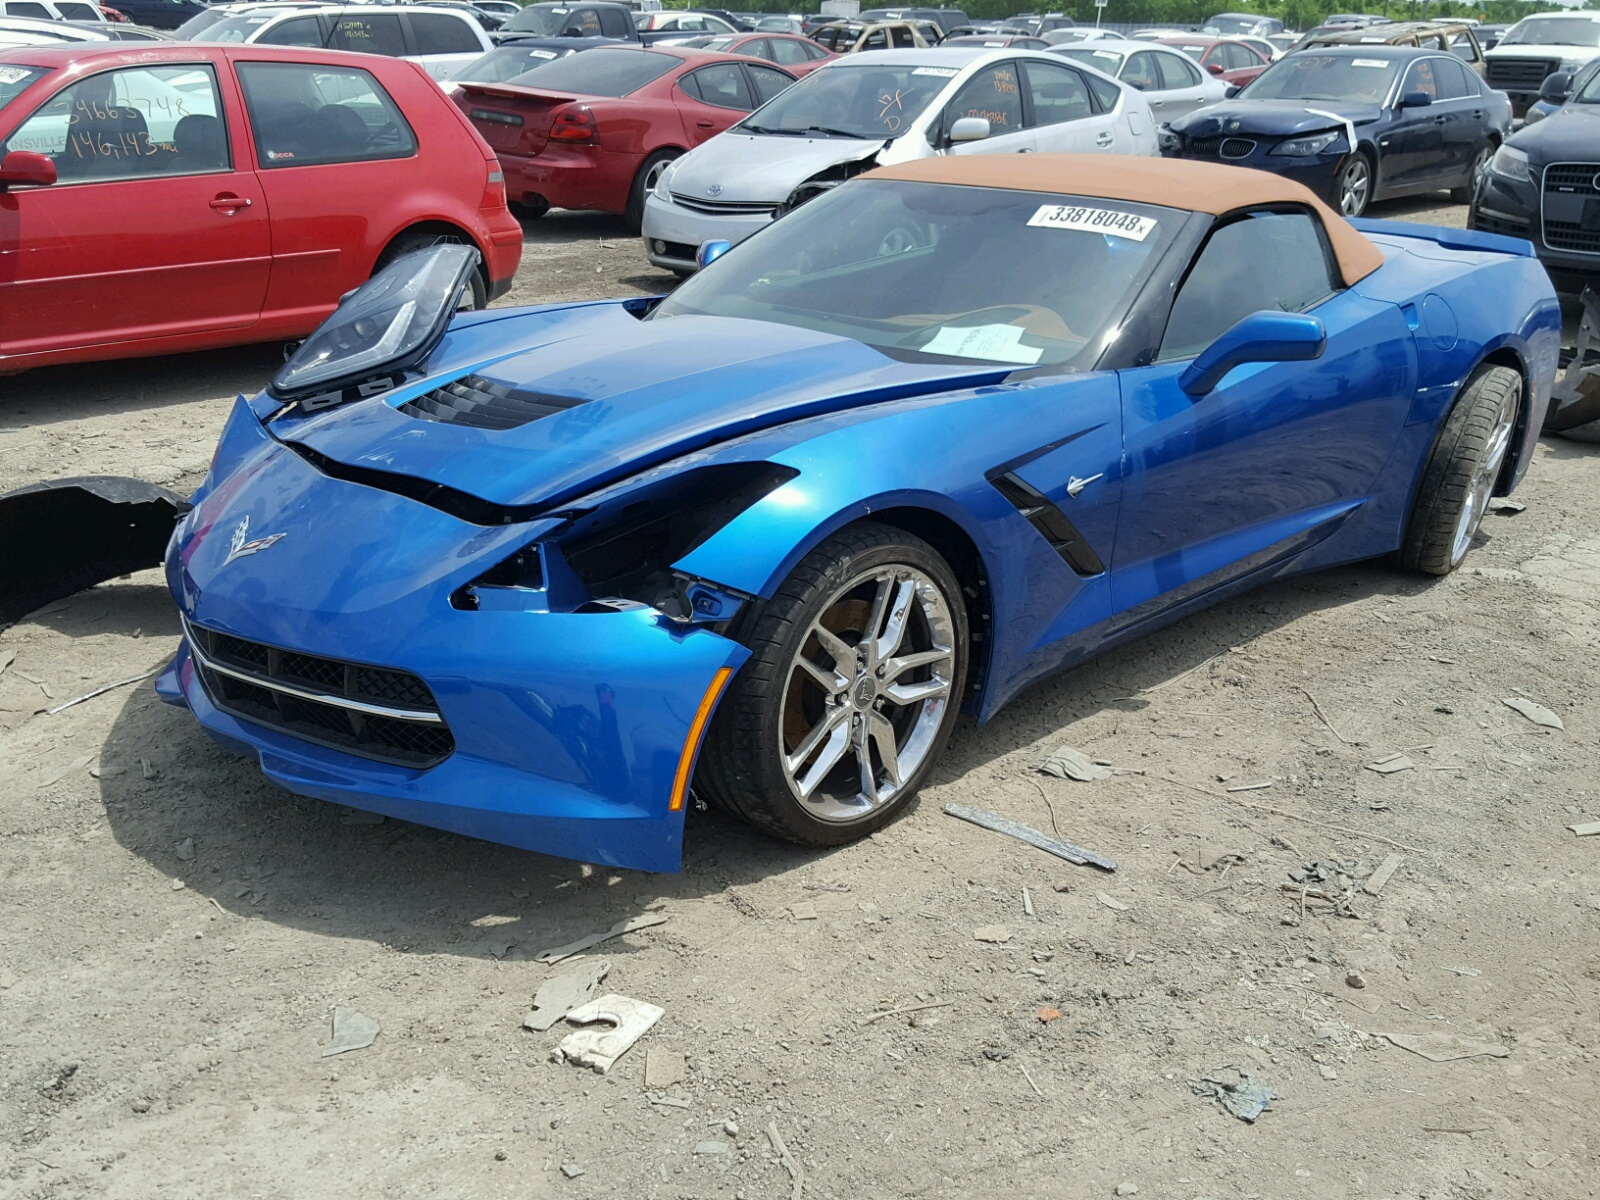 2014 chevrolet corvette s for sale at copart indianapolis in lot 33818048. Black Bedroom Furniture Sets. Home Design Ideas